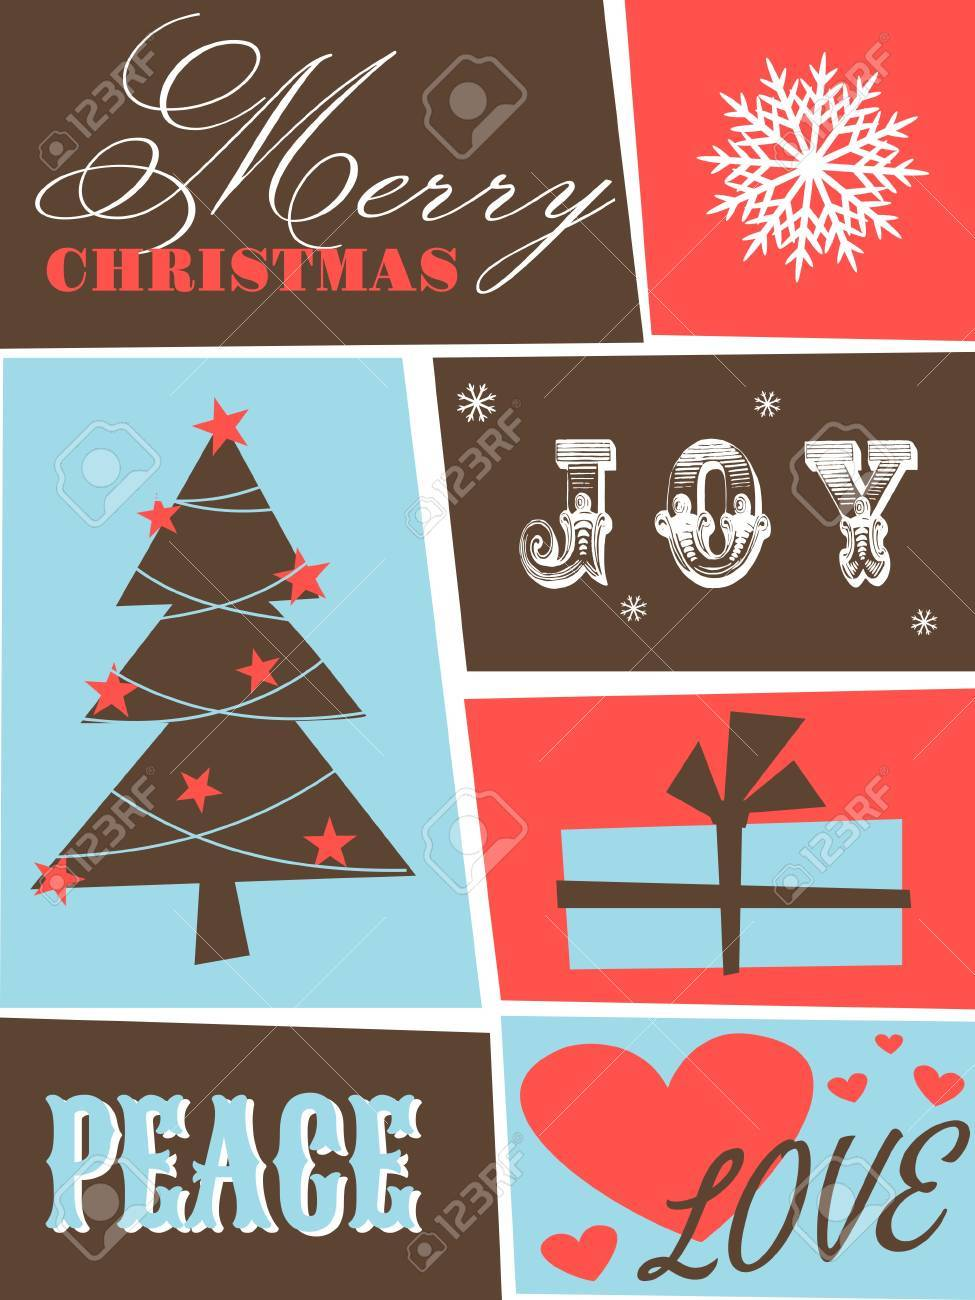 Greeting card design for Christmas Stock Vector - 14031262